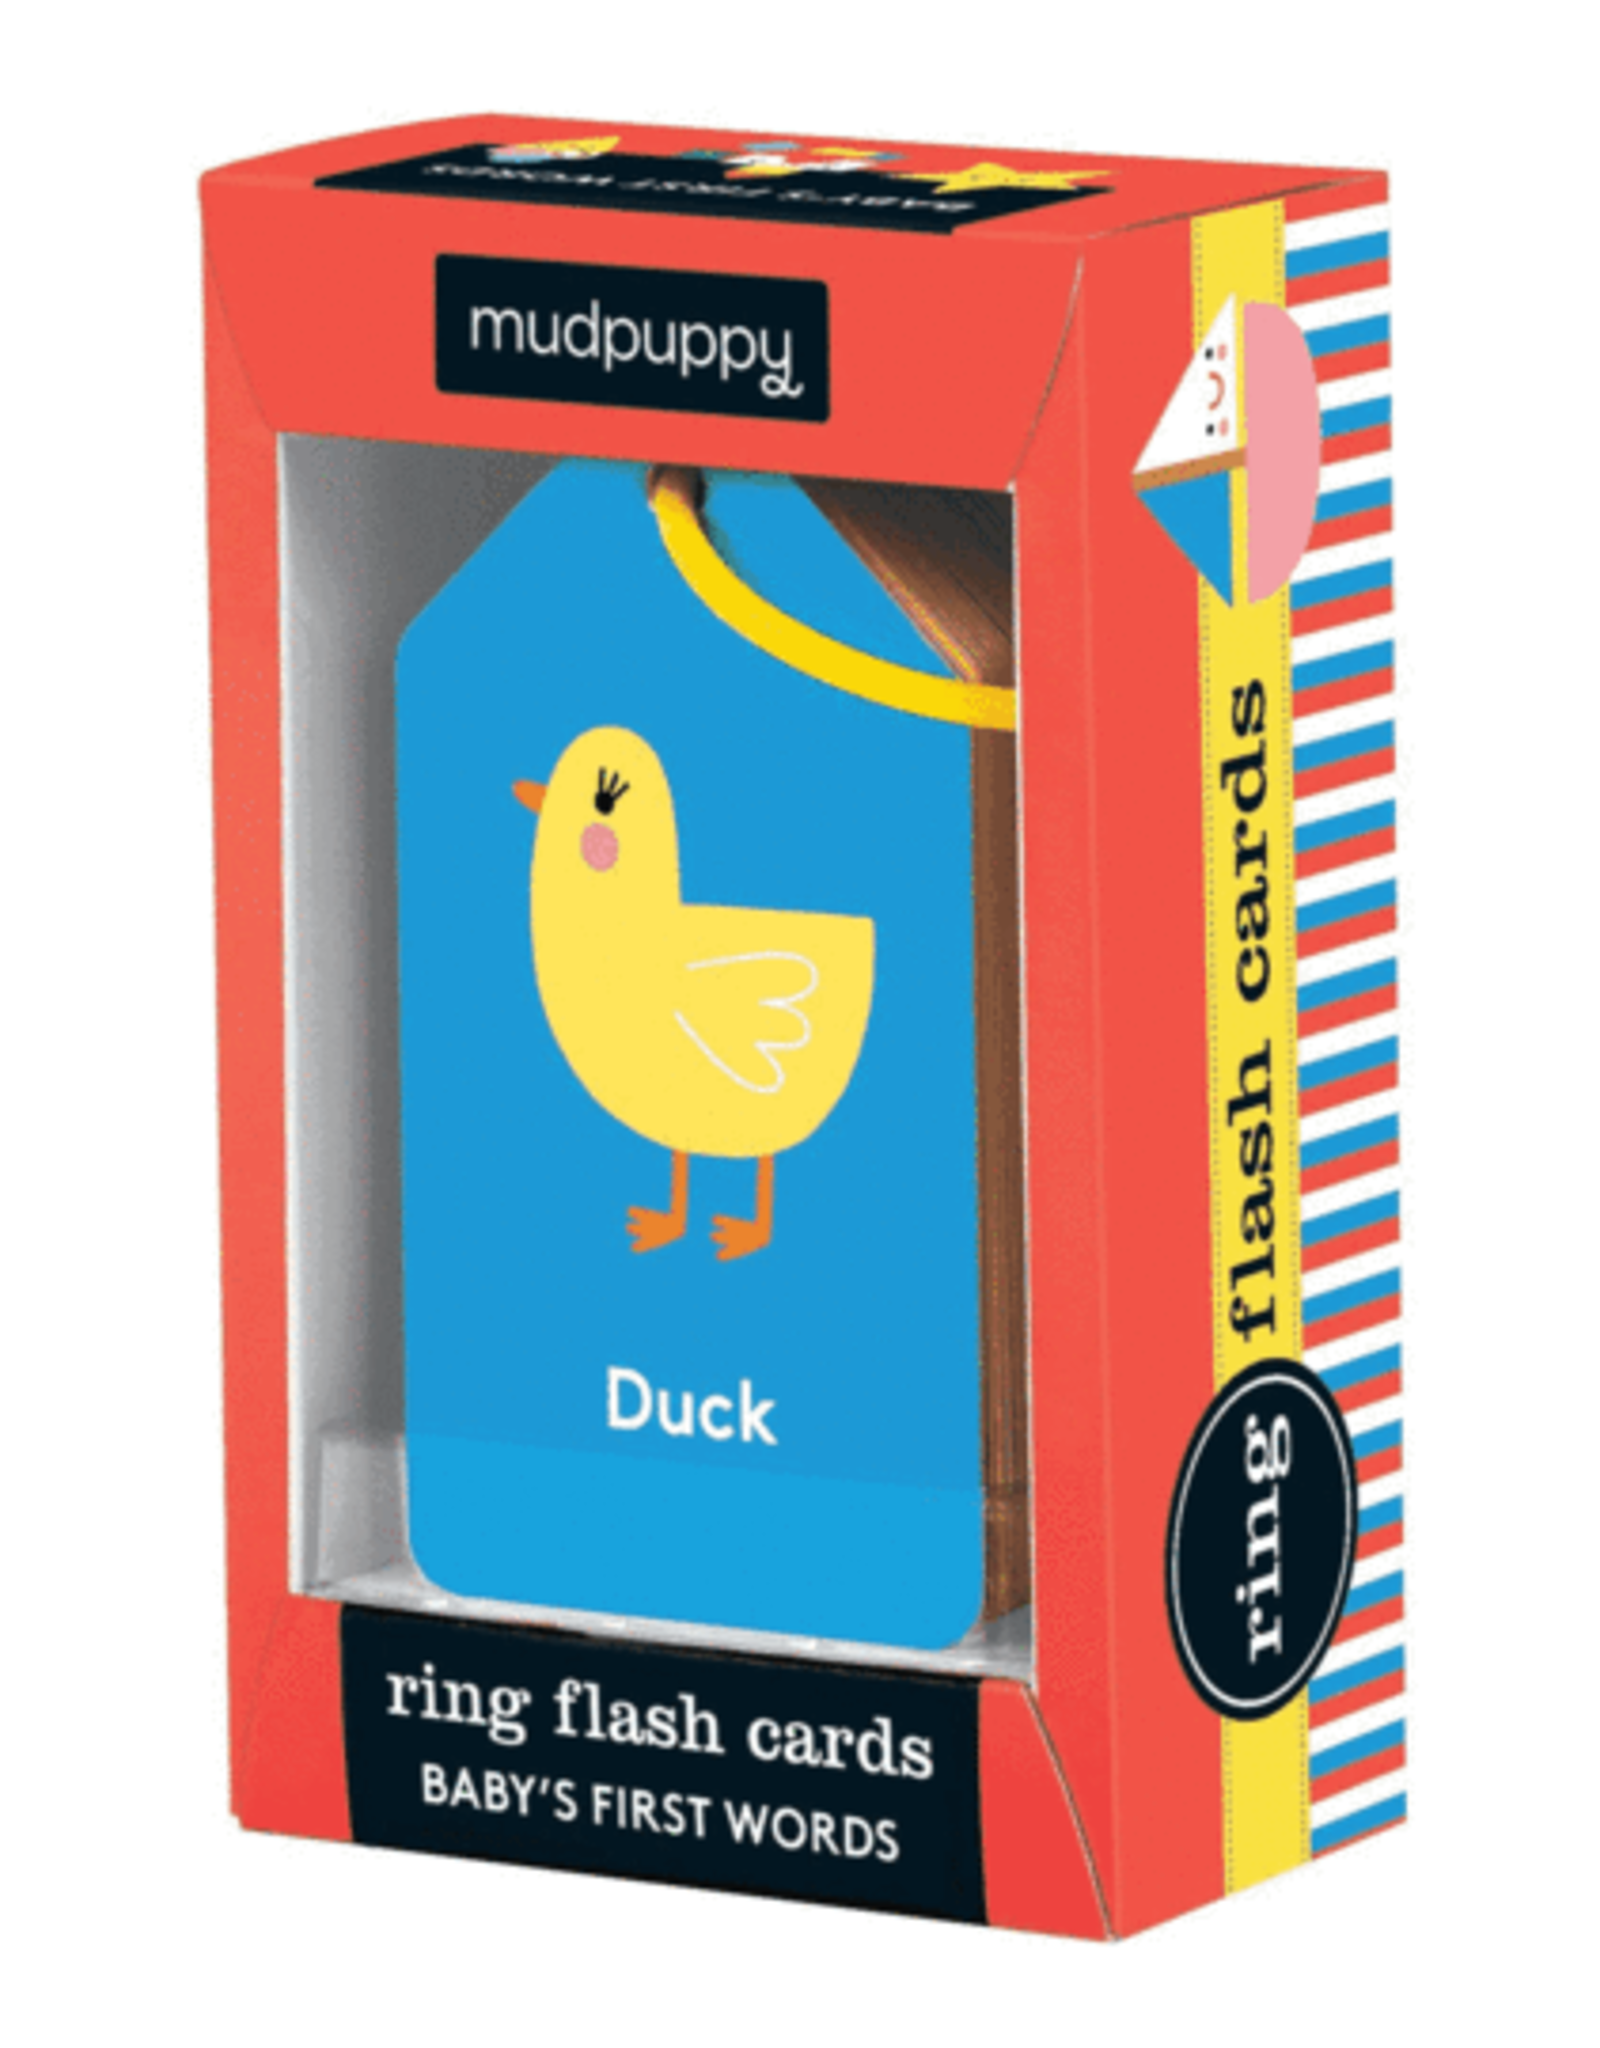 Mudpuppy Flash Card Ring